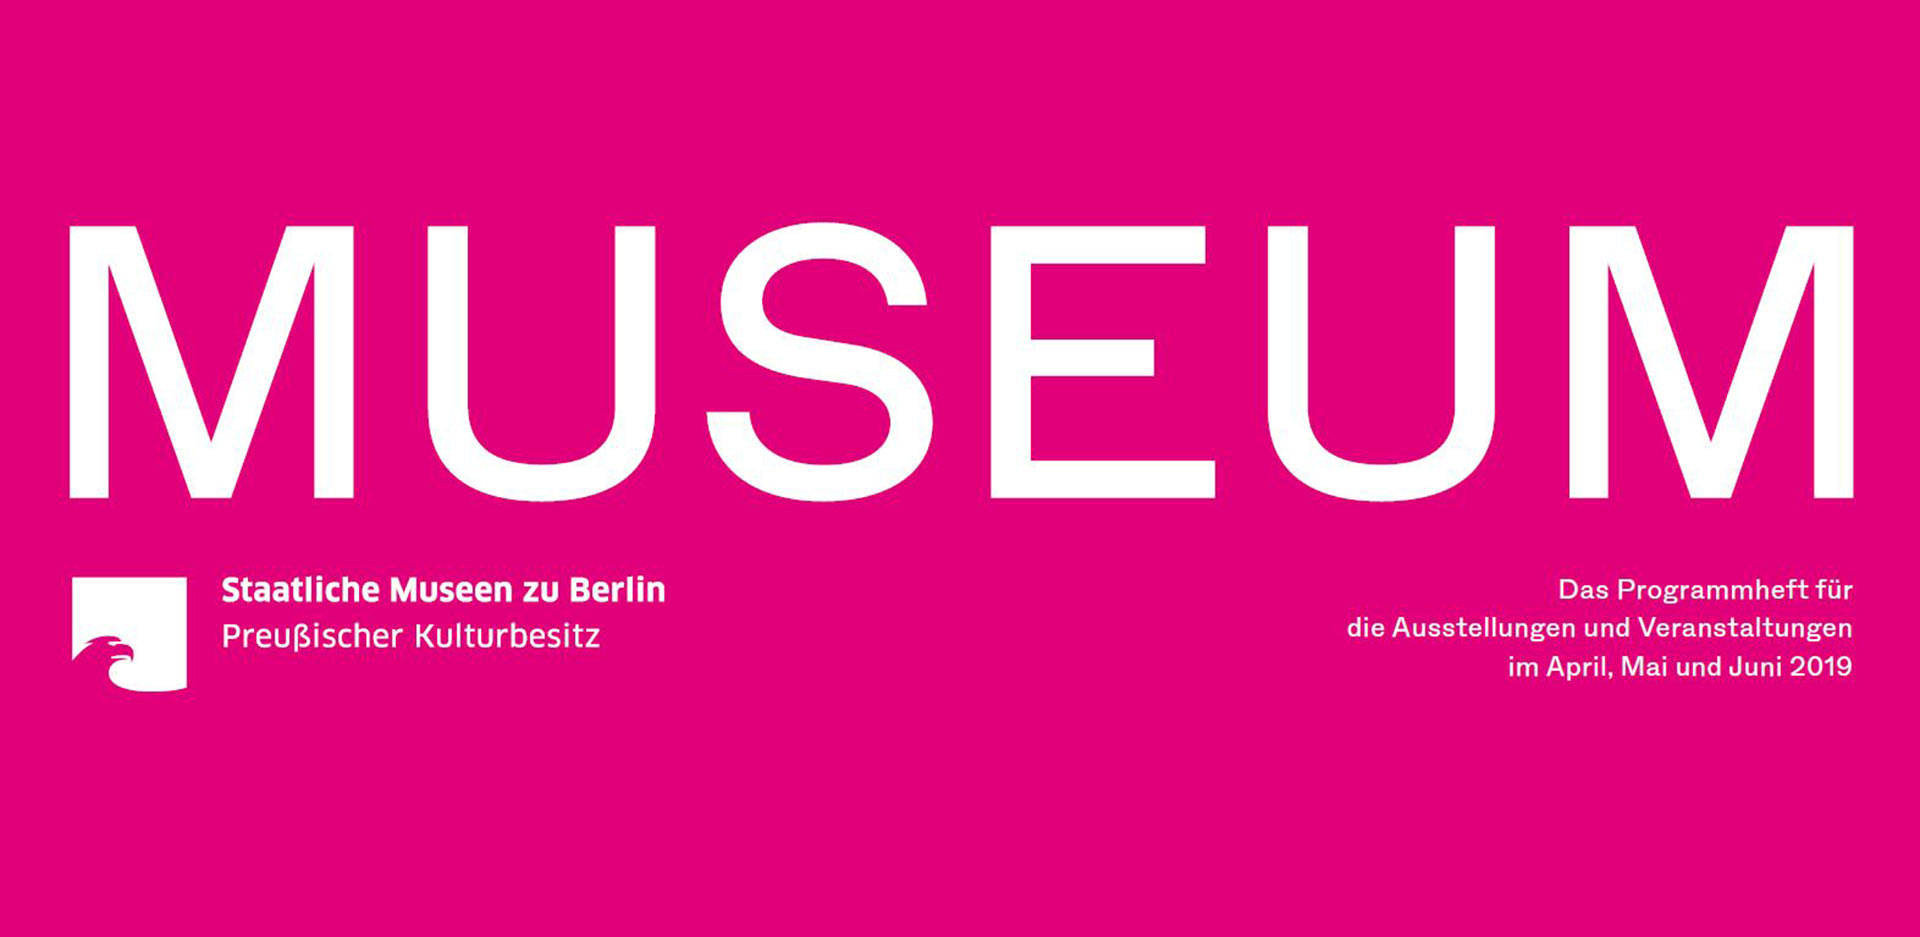 MUSEUM II 2019 – The program of the Staatliche Museen zu Berlin is out now!